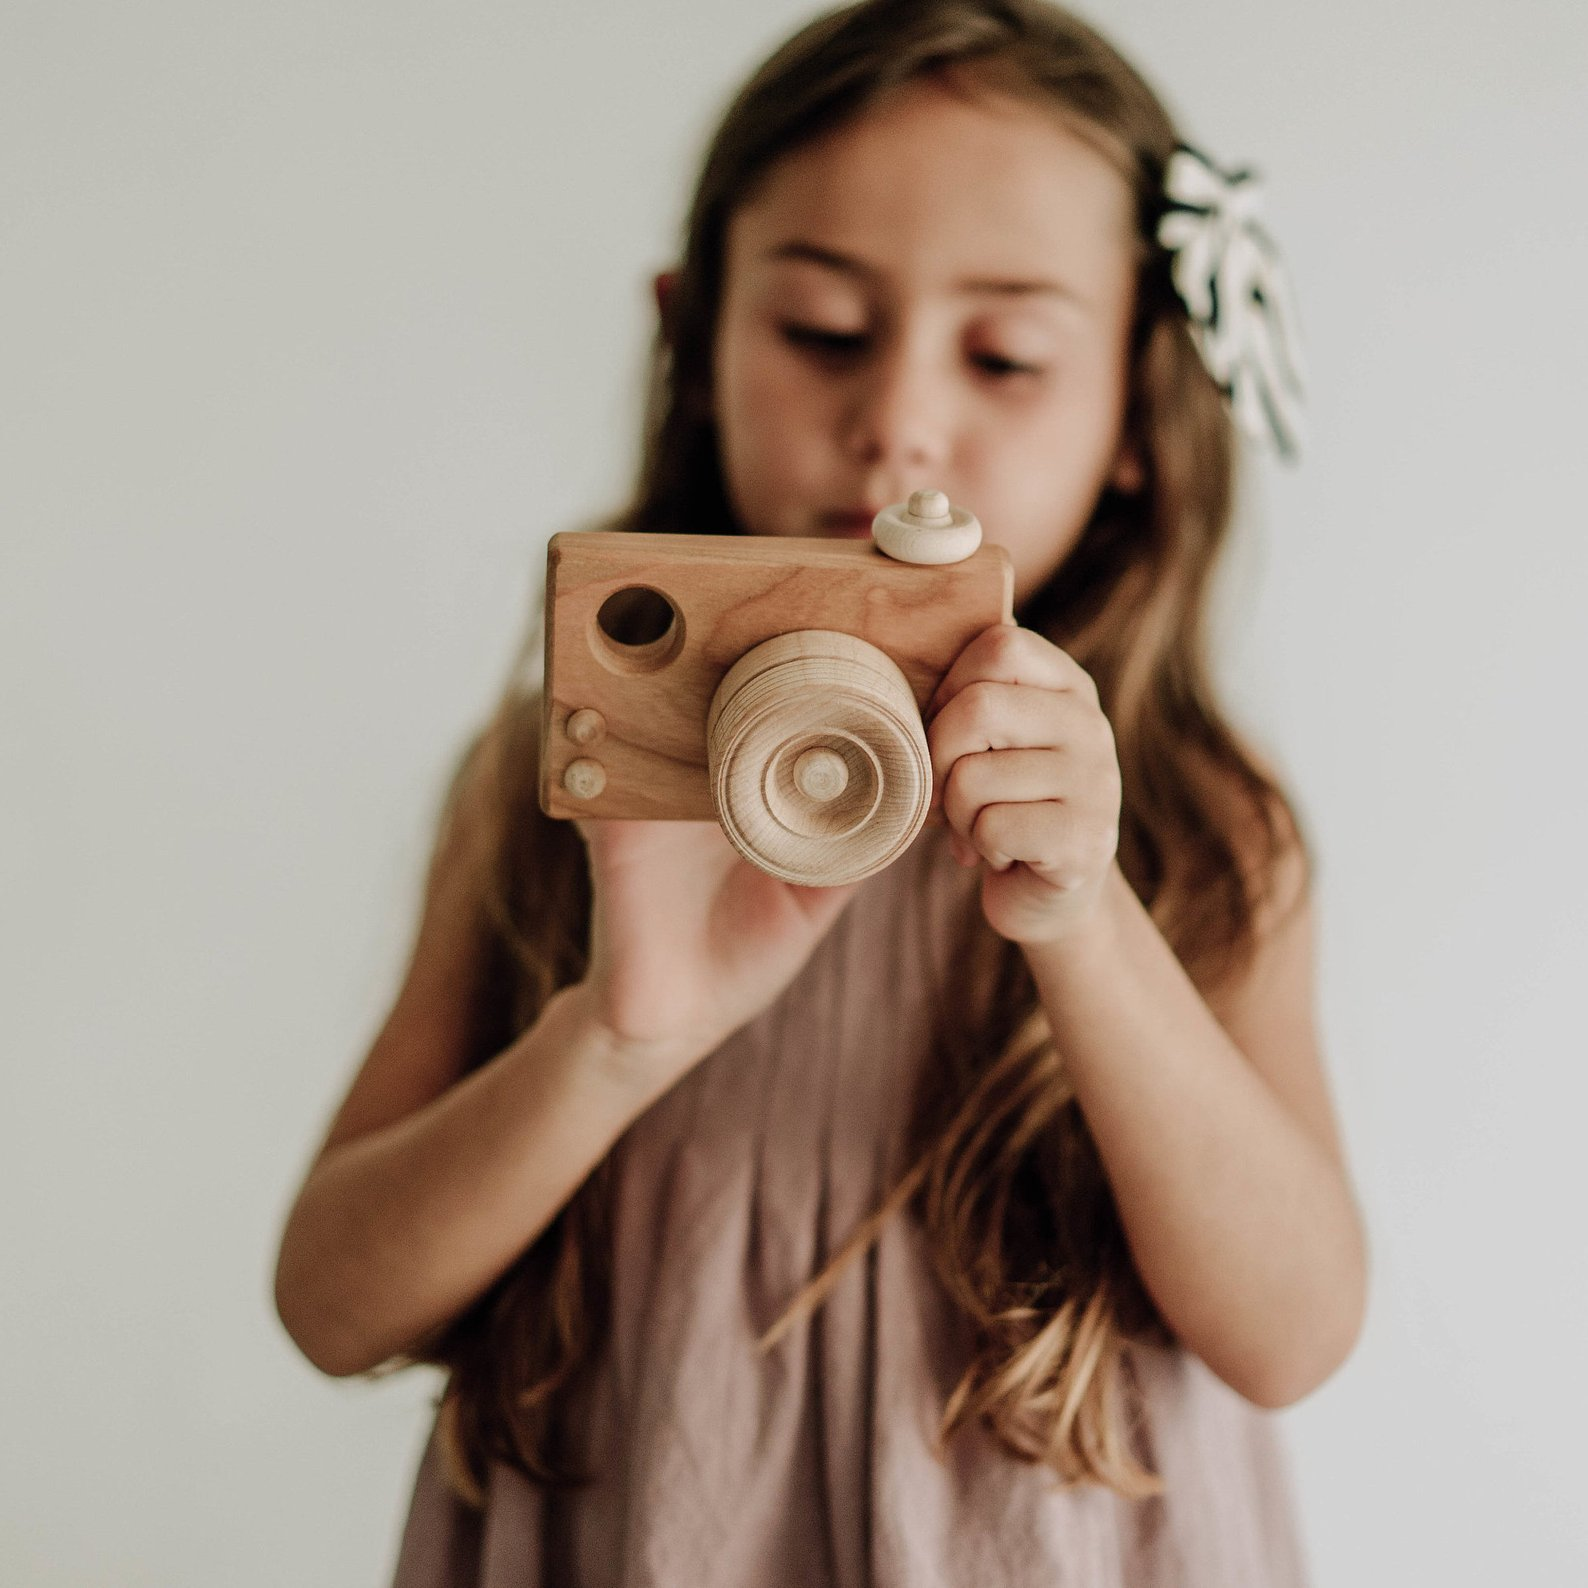 Organic Wooden Toy Camera By Bannor Toys